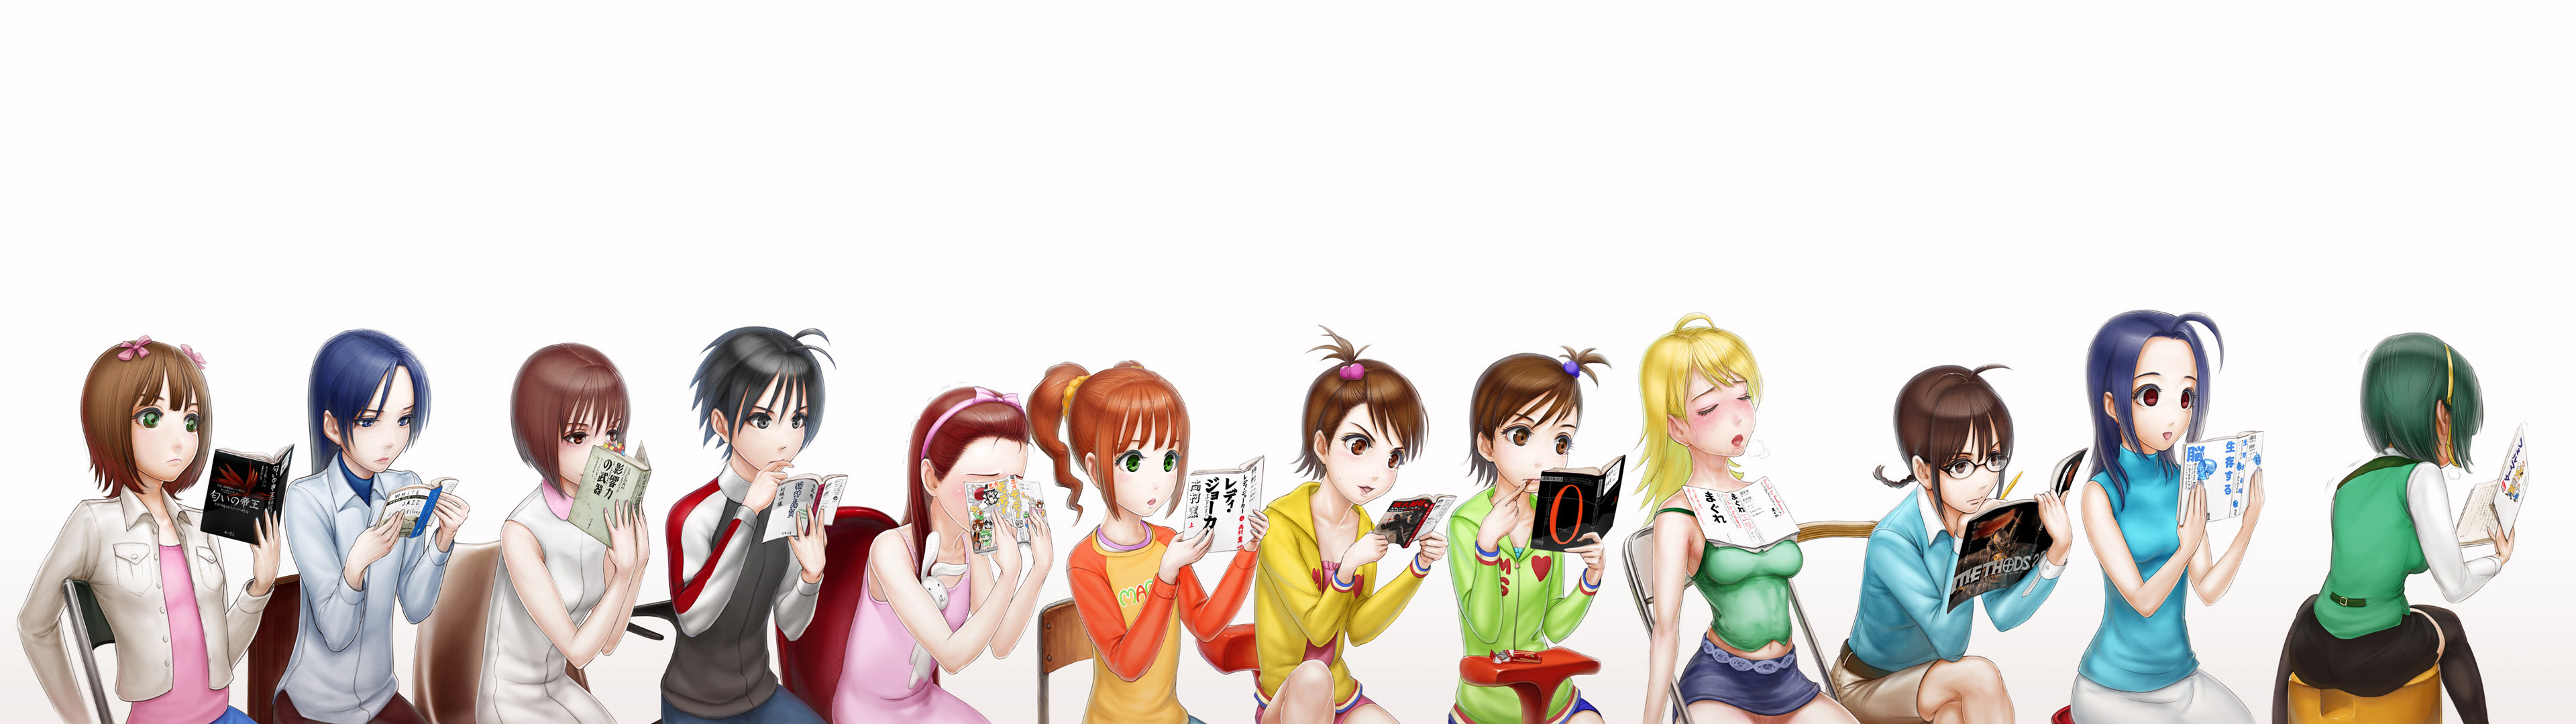 Download dual monitor 3840x1080 IDOLM@STER PC background ID:82712 for free